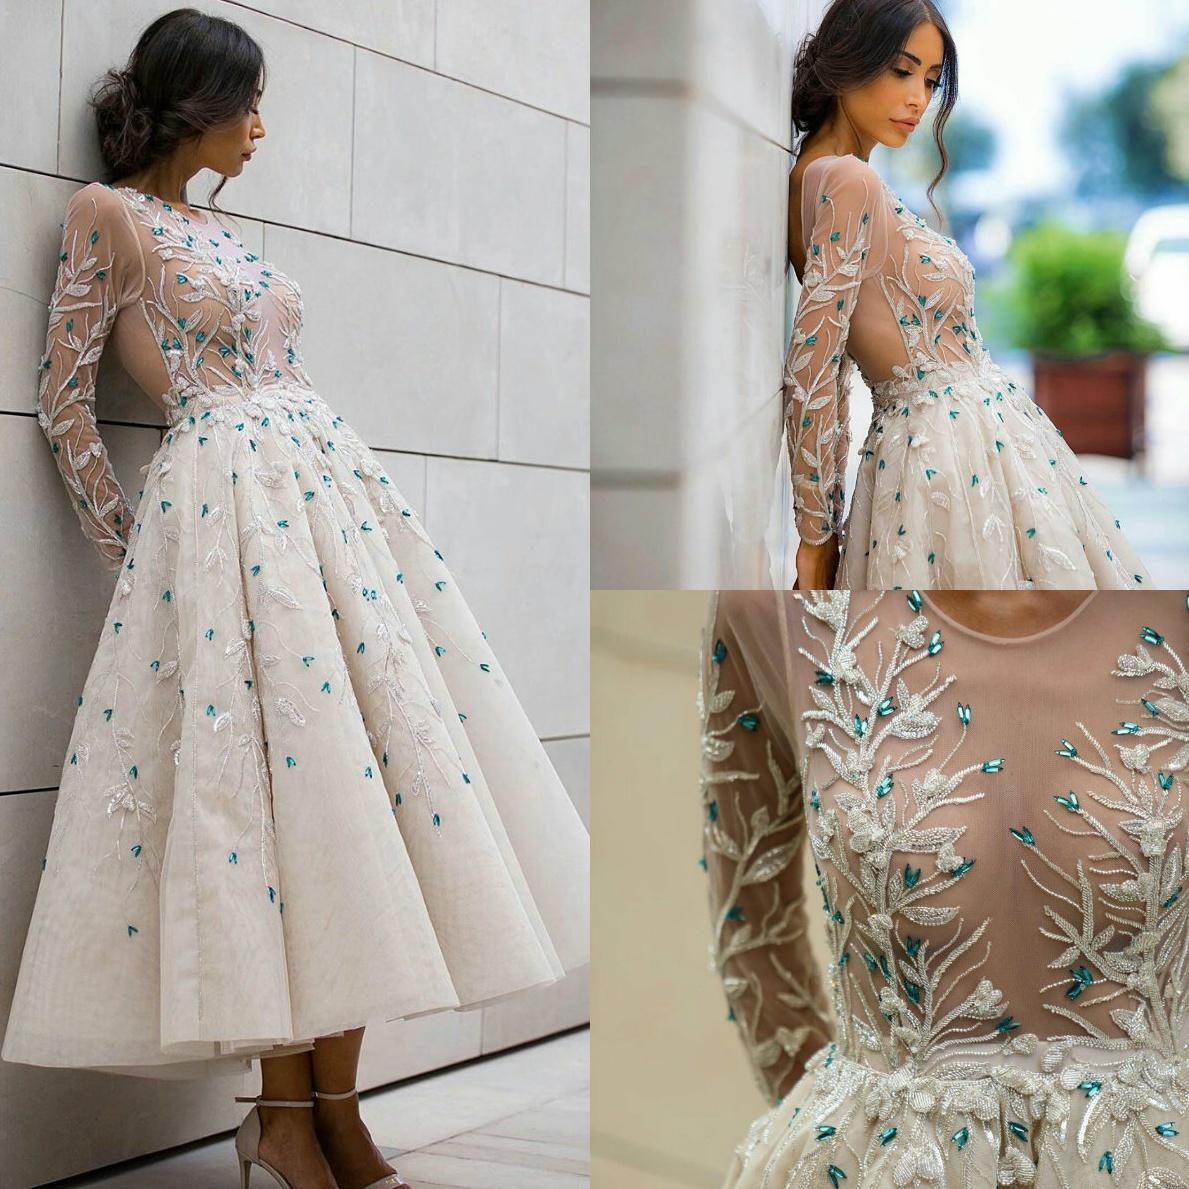 2020 Elie Saab See Through Short Prom Dresses Tea Length Embroidery Beaded Long Sleeve Evening Gowns Party Dress Vestidos Longo